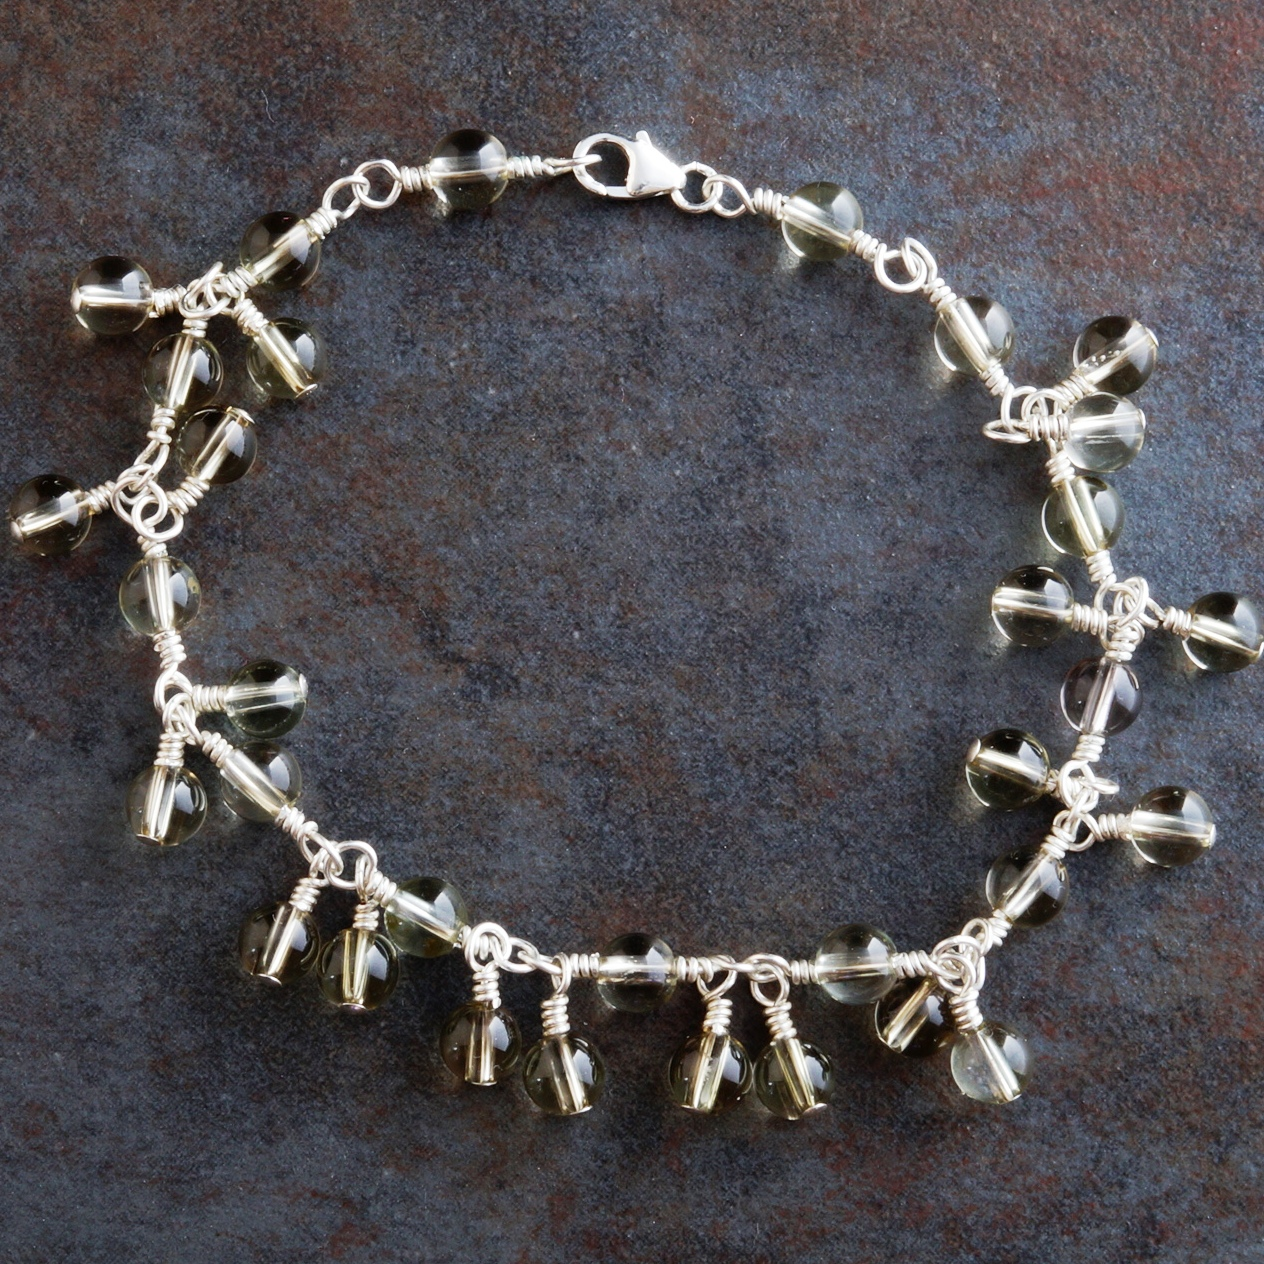 Handmade Sterling Silver Smokey Lemon Quartz Anklet